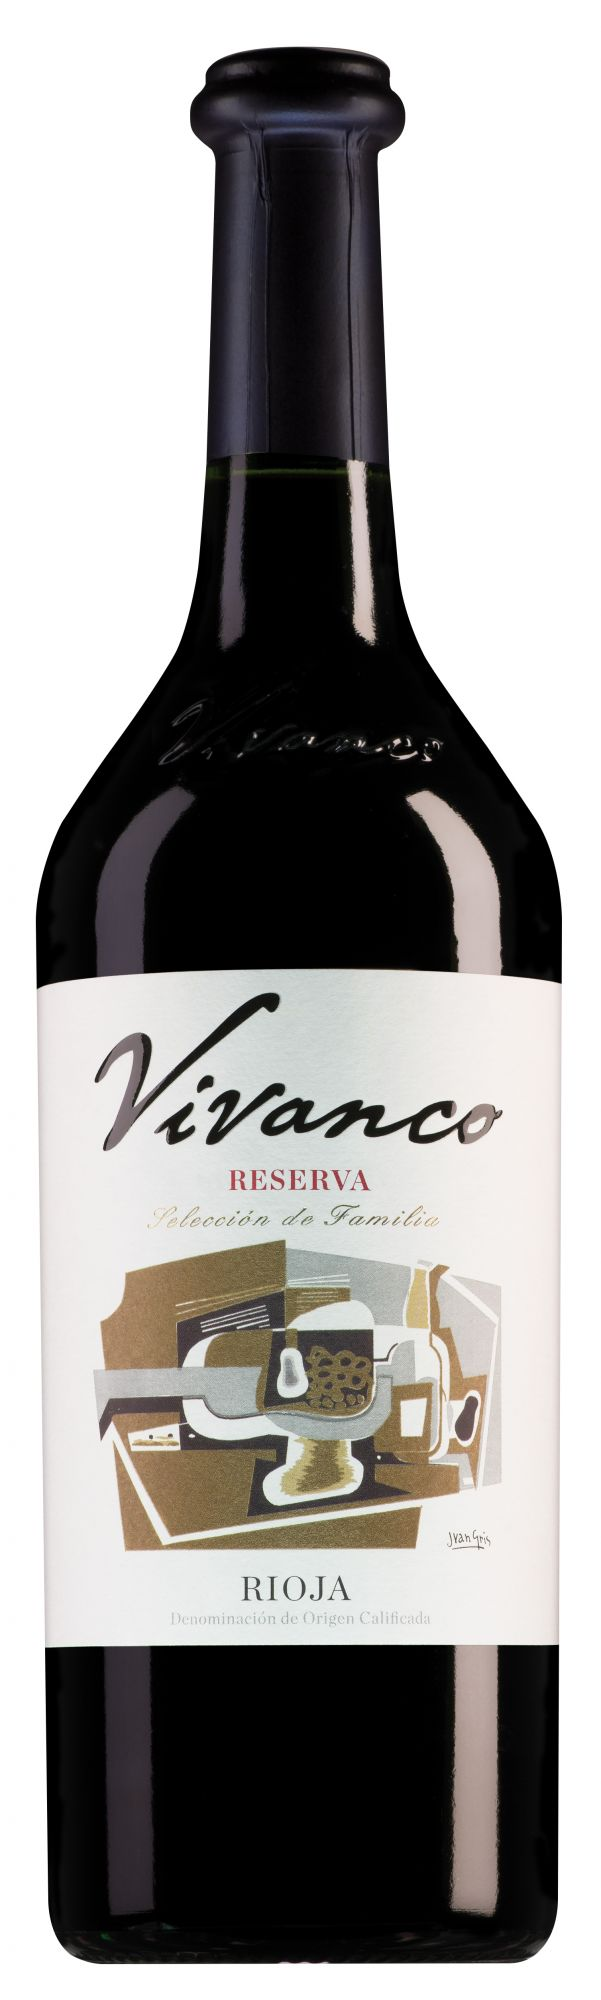 Vivanco Rioja Reserva